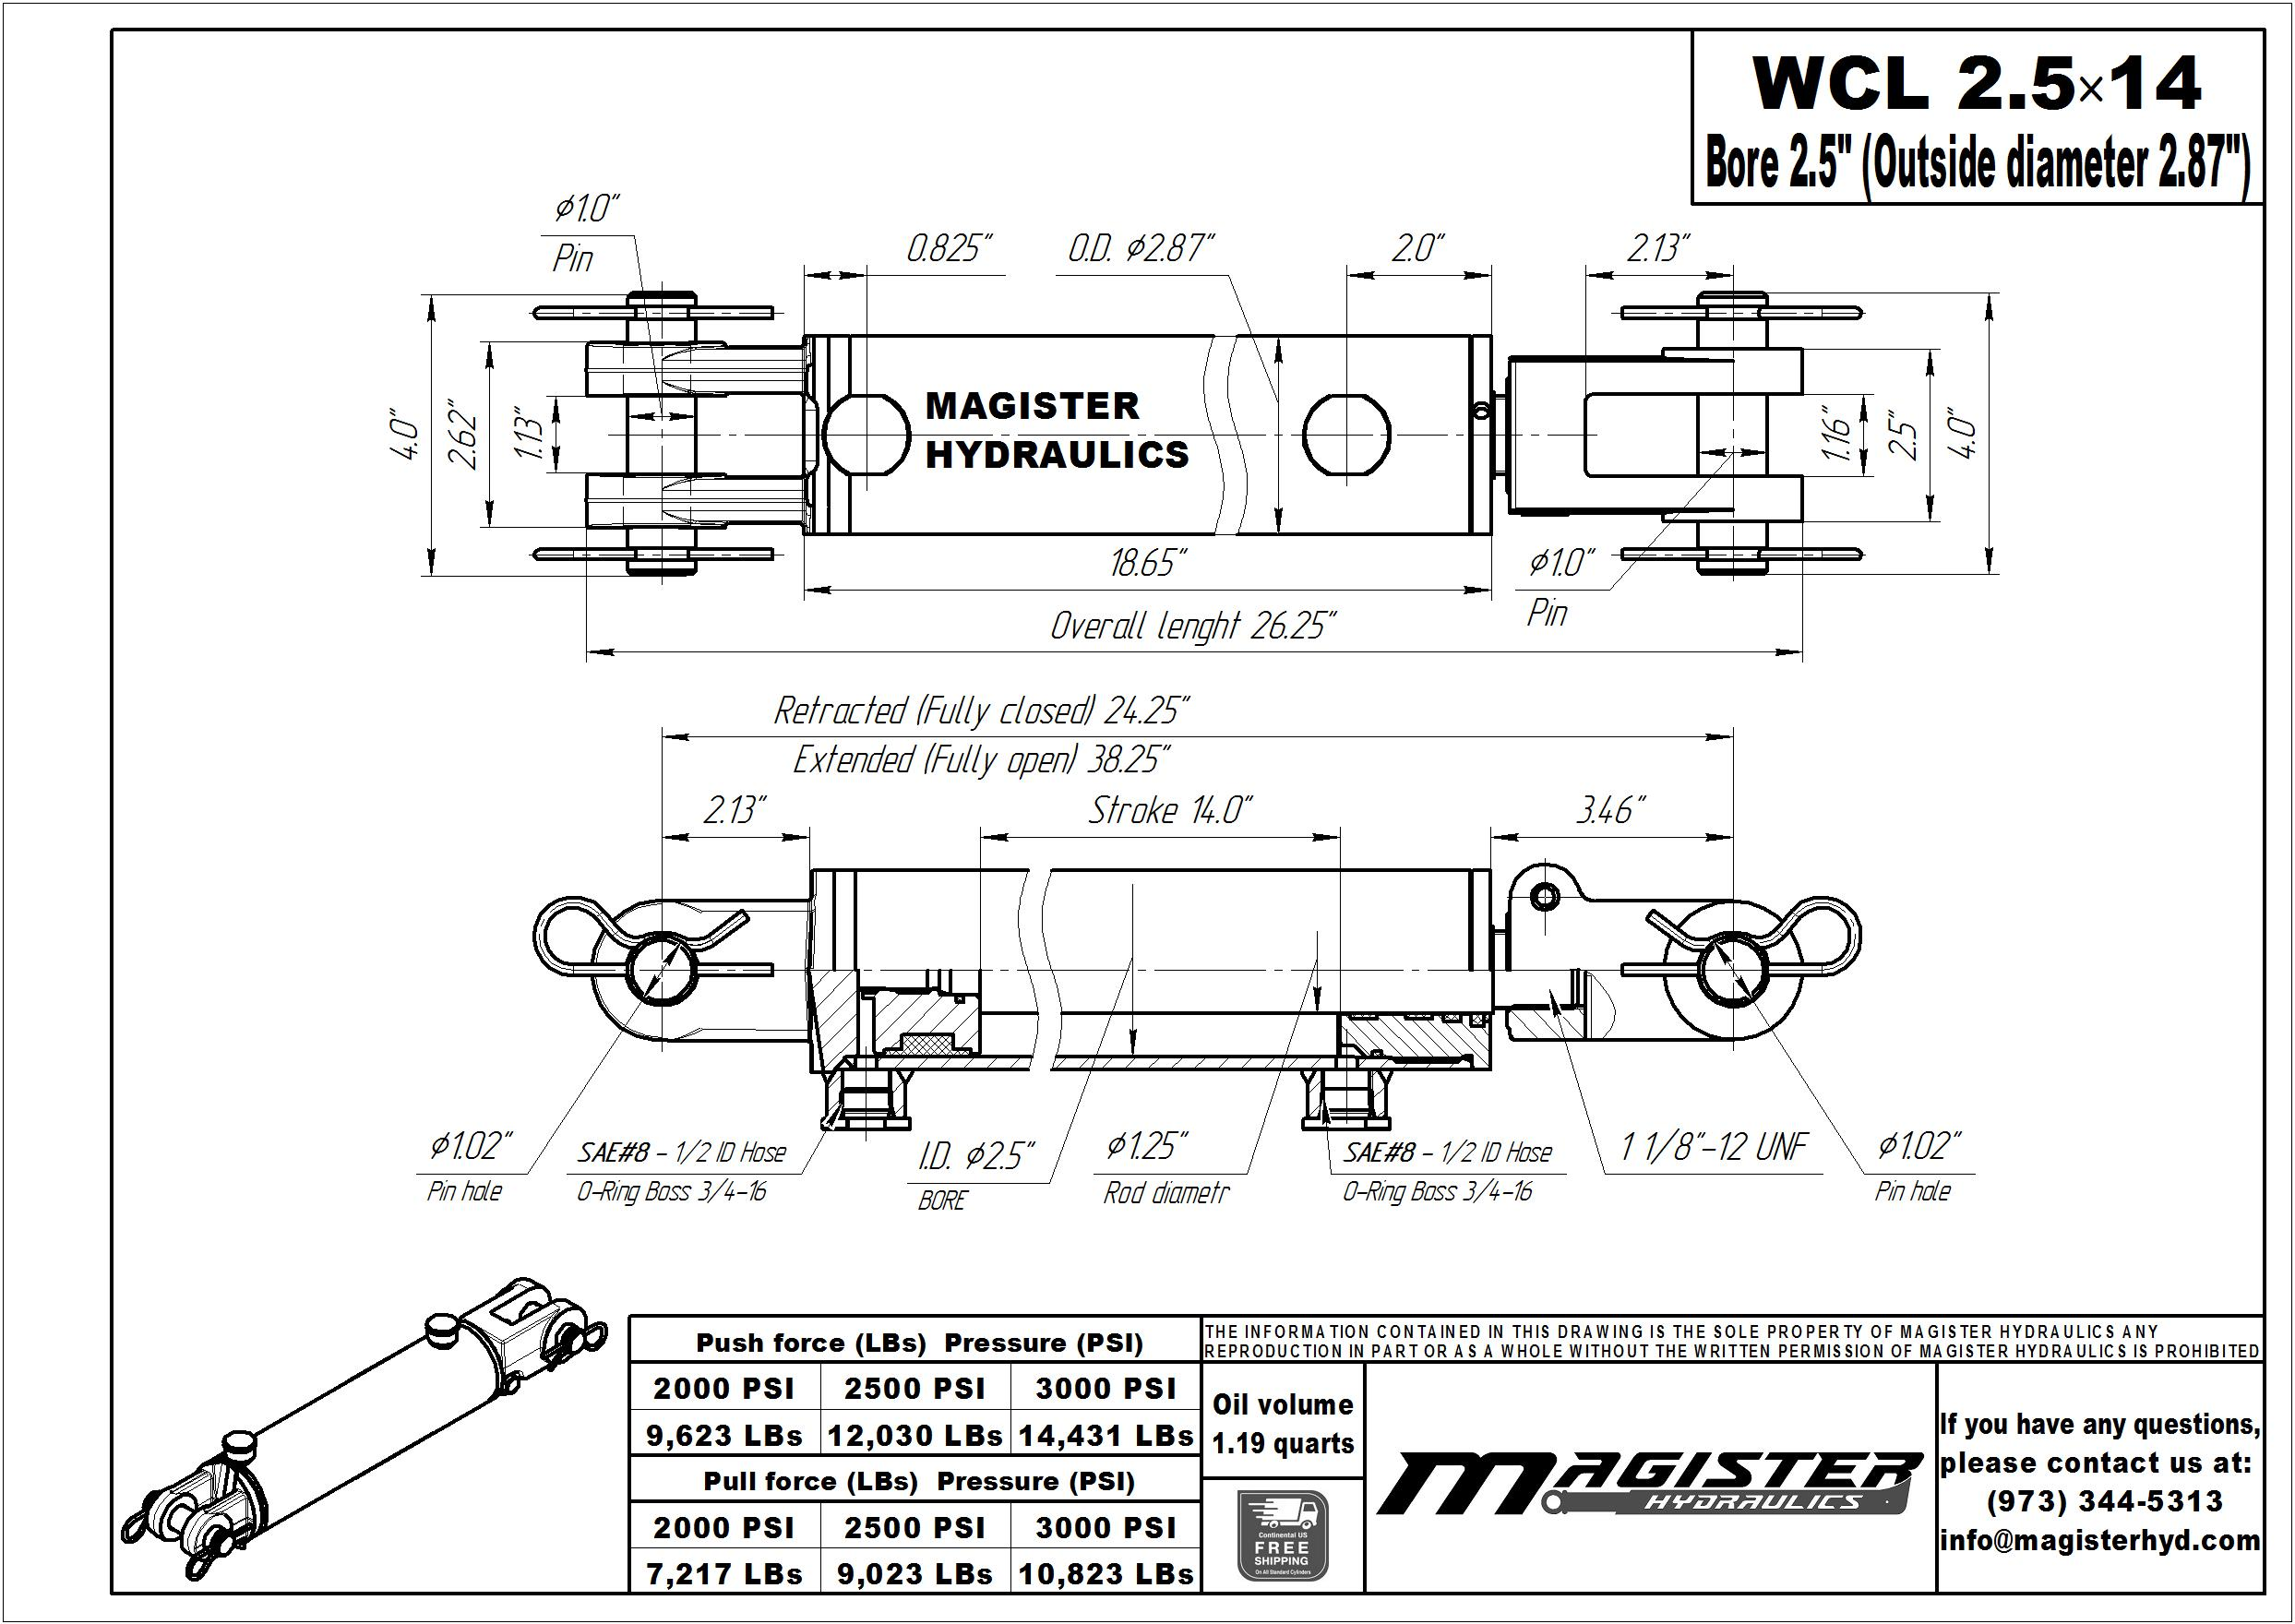 2.5 bore x 14 stroke hydraulic cylinder, welded clevis double acting cylinder   Magister Hydraulics